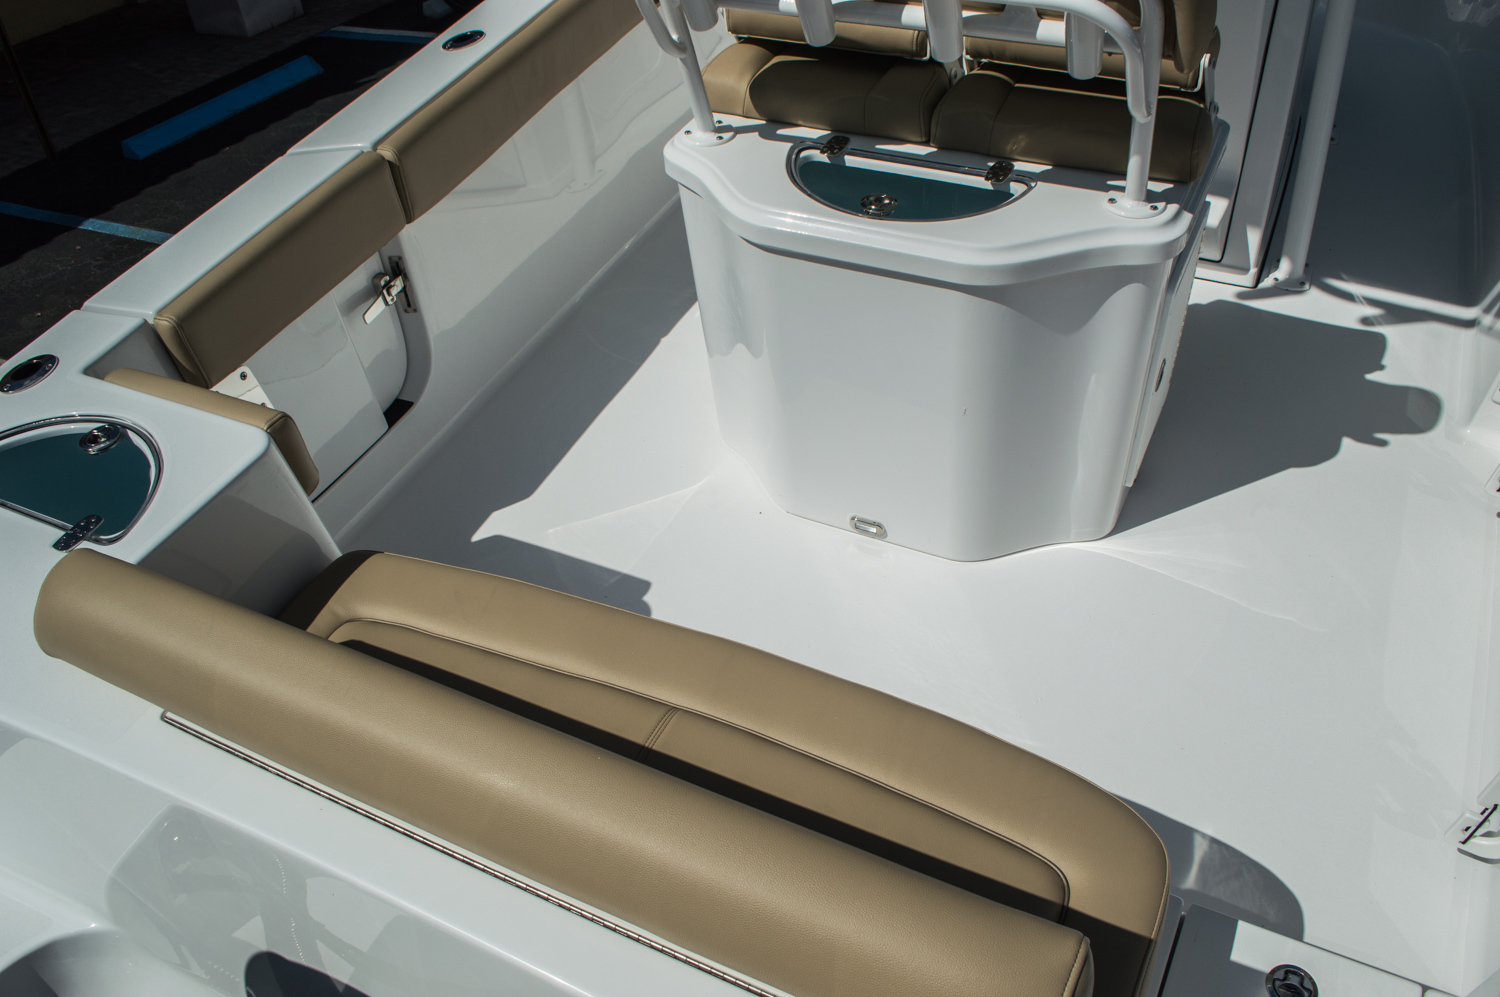 Thumbnail 9 for New 2016 Sportsman Heritage 251 Center Console boat for sale in West Palm Beach, FL